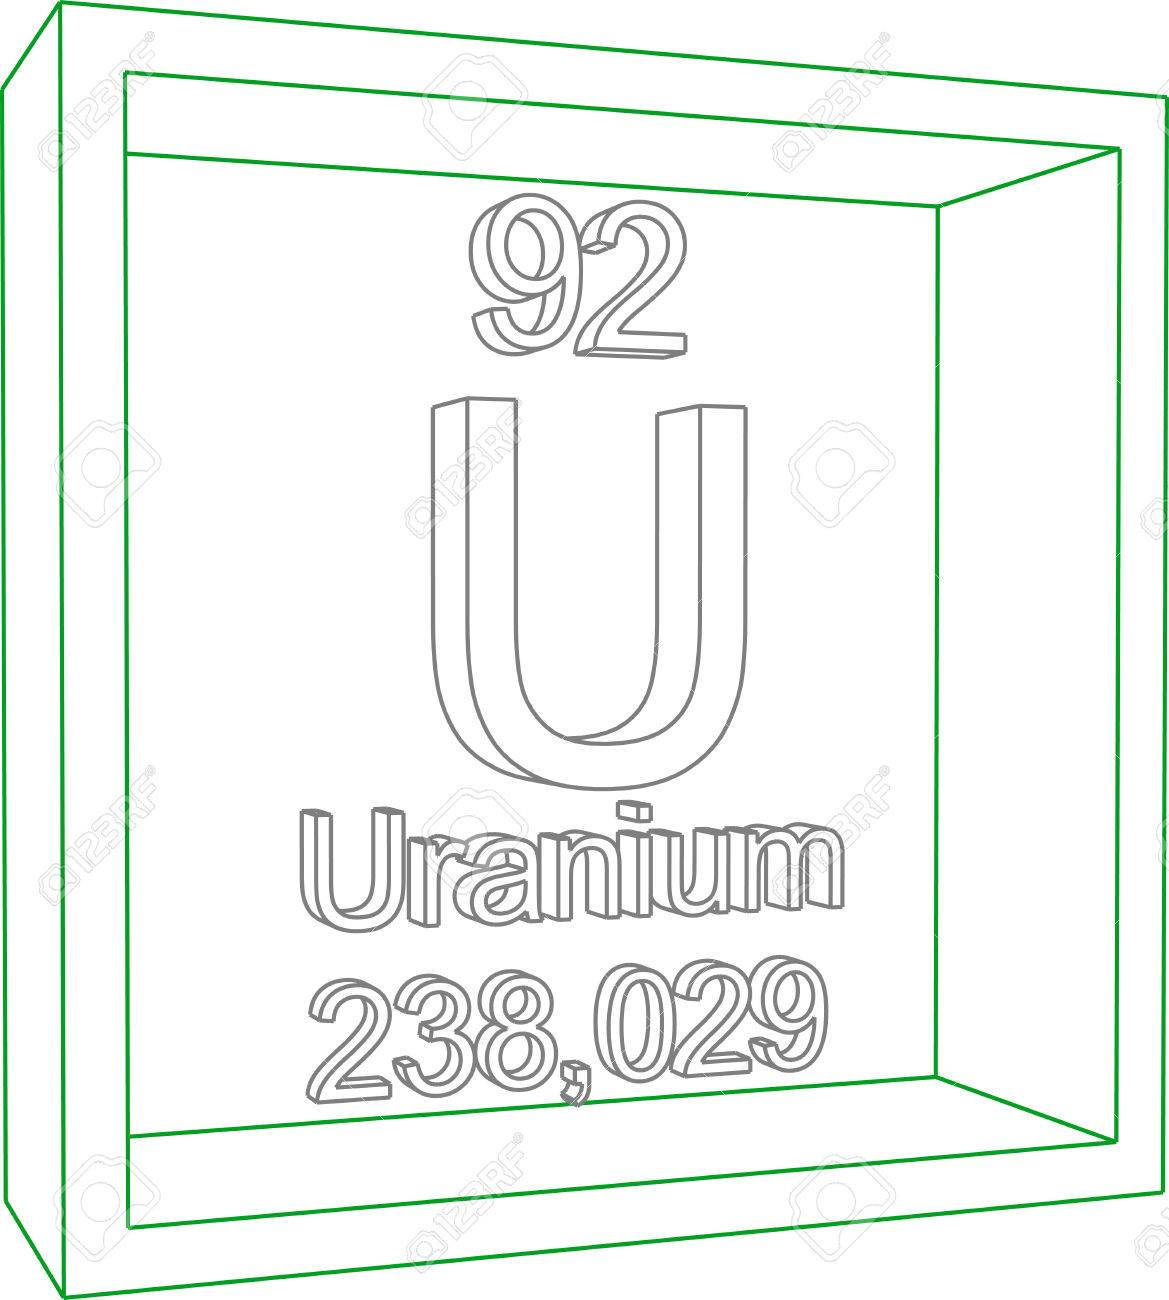 Periodic table of elements uranium royalty free cliparts vectors periodic table of elements uranium stock vector 57970196 urtaz Image collections